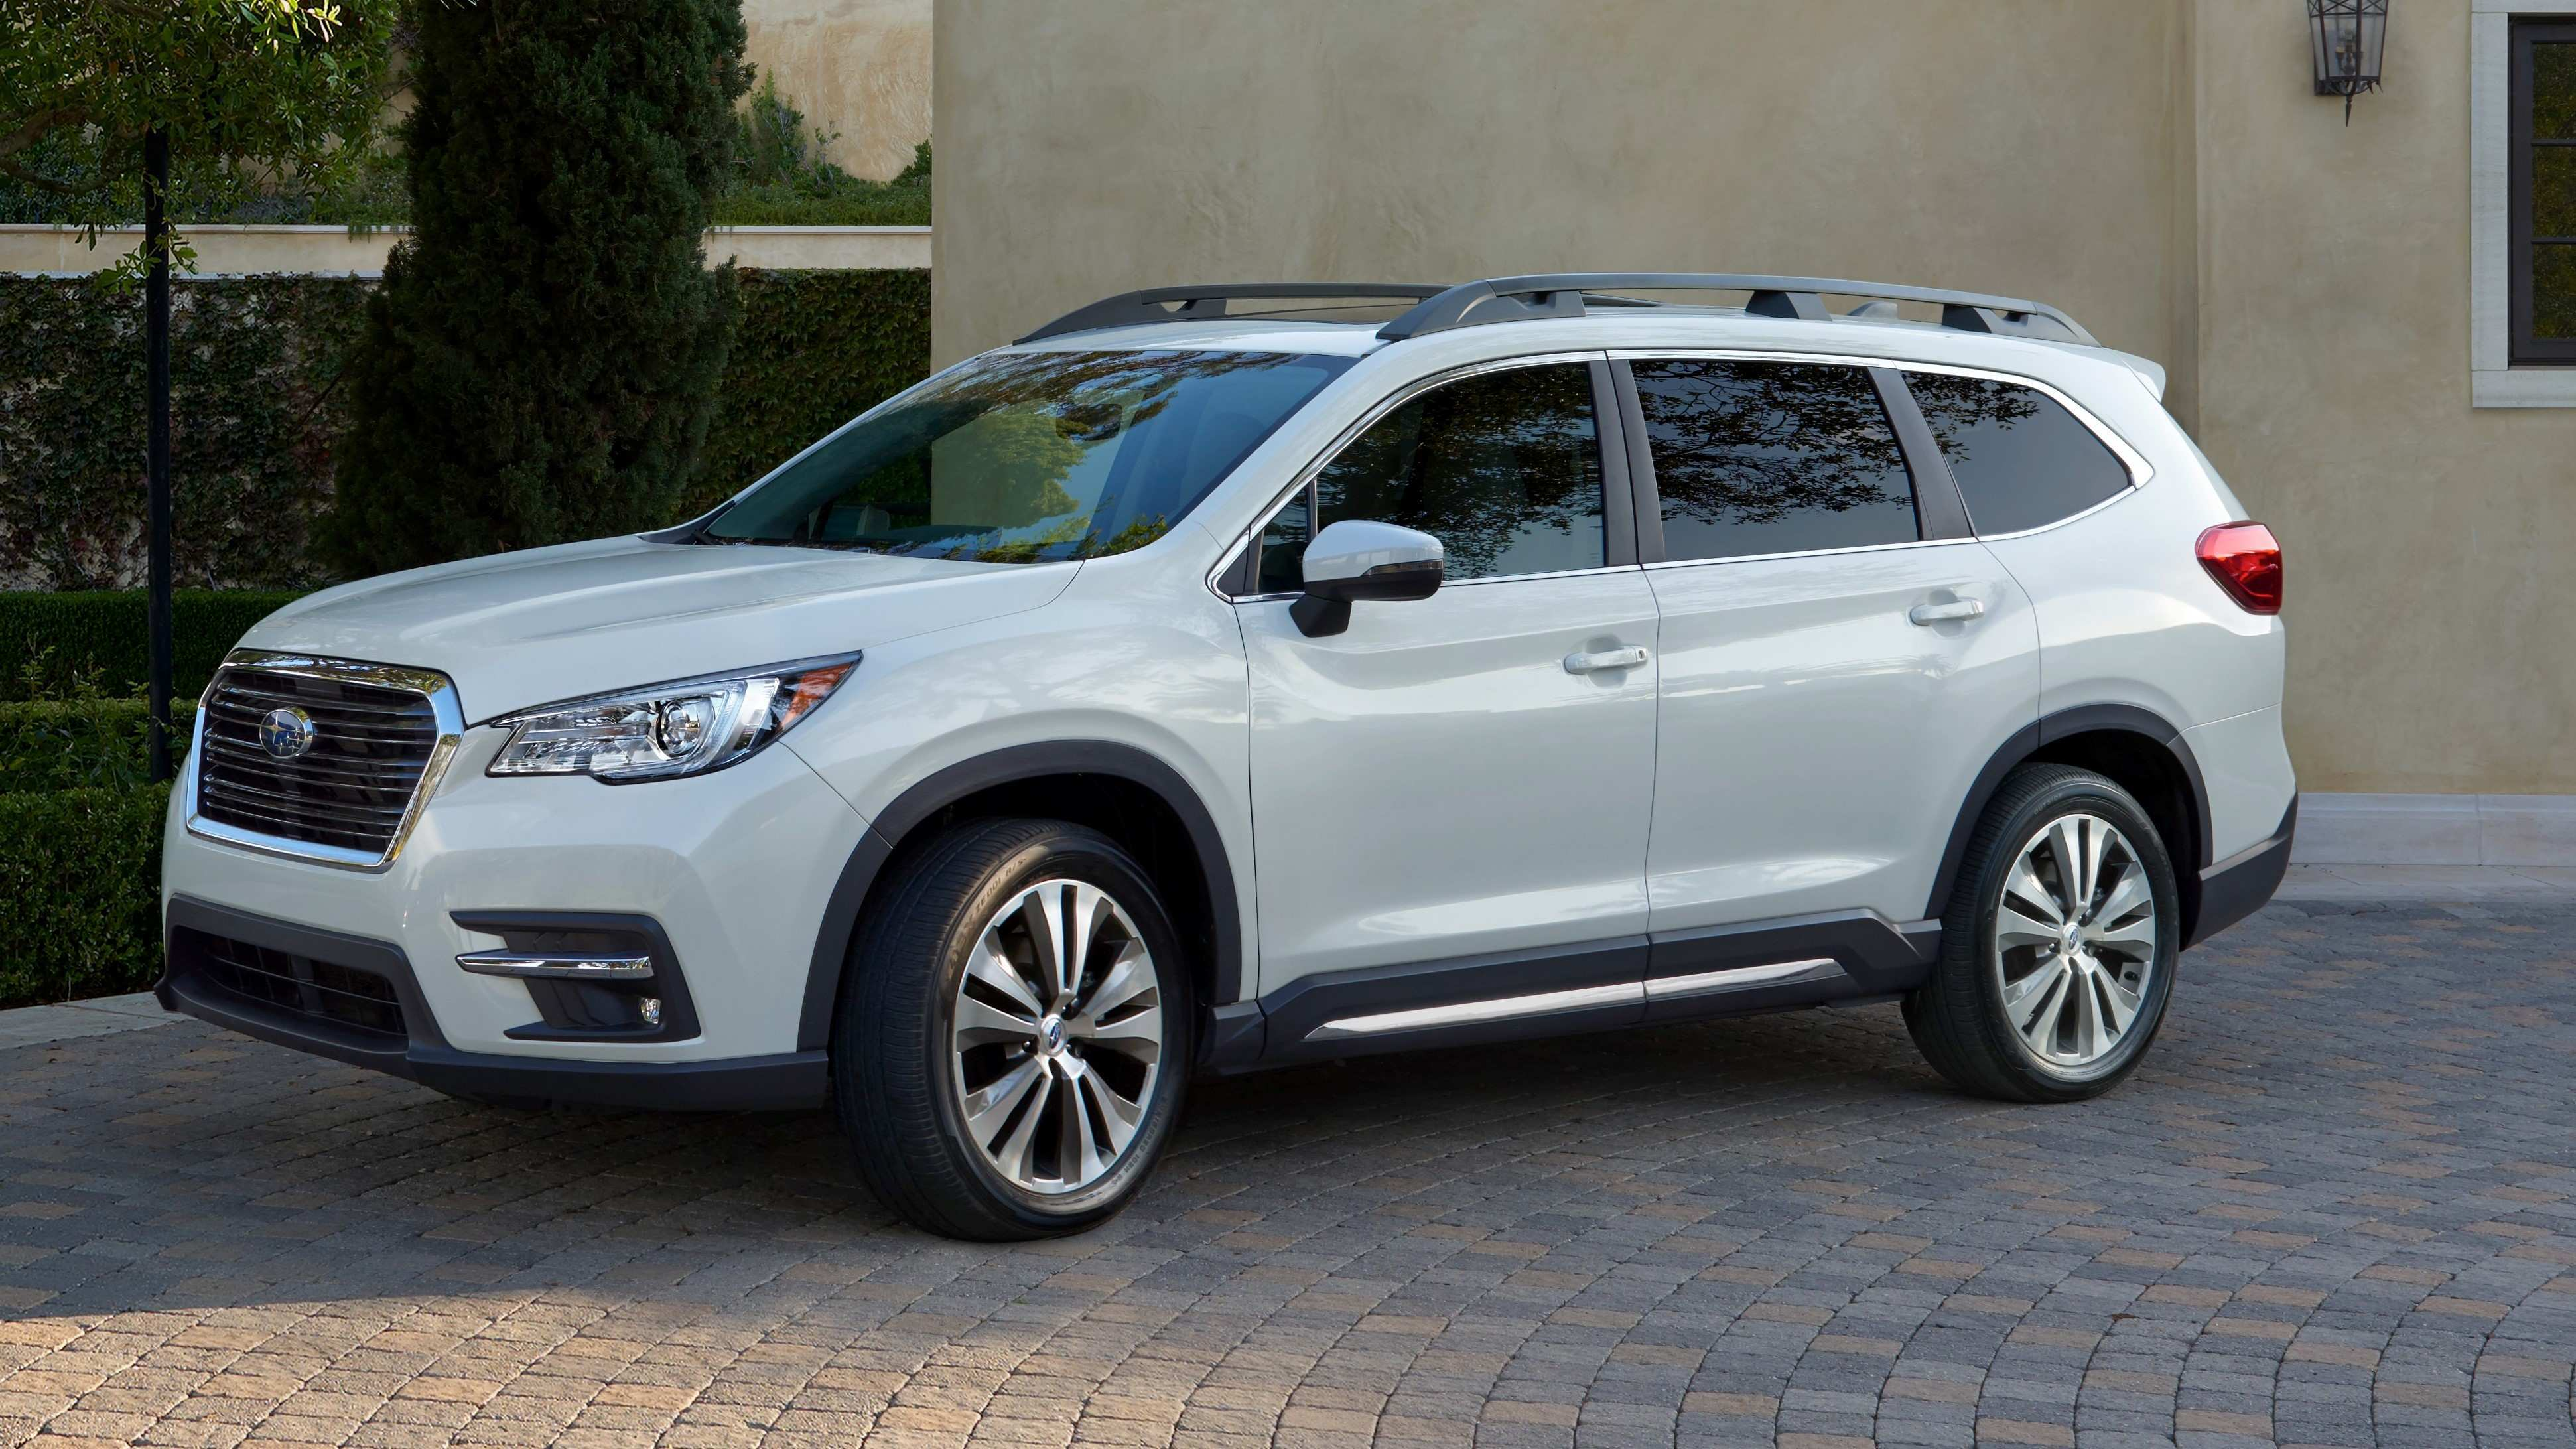 52 All New Subaru Ascent 2019 Engine Review